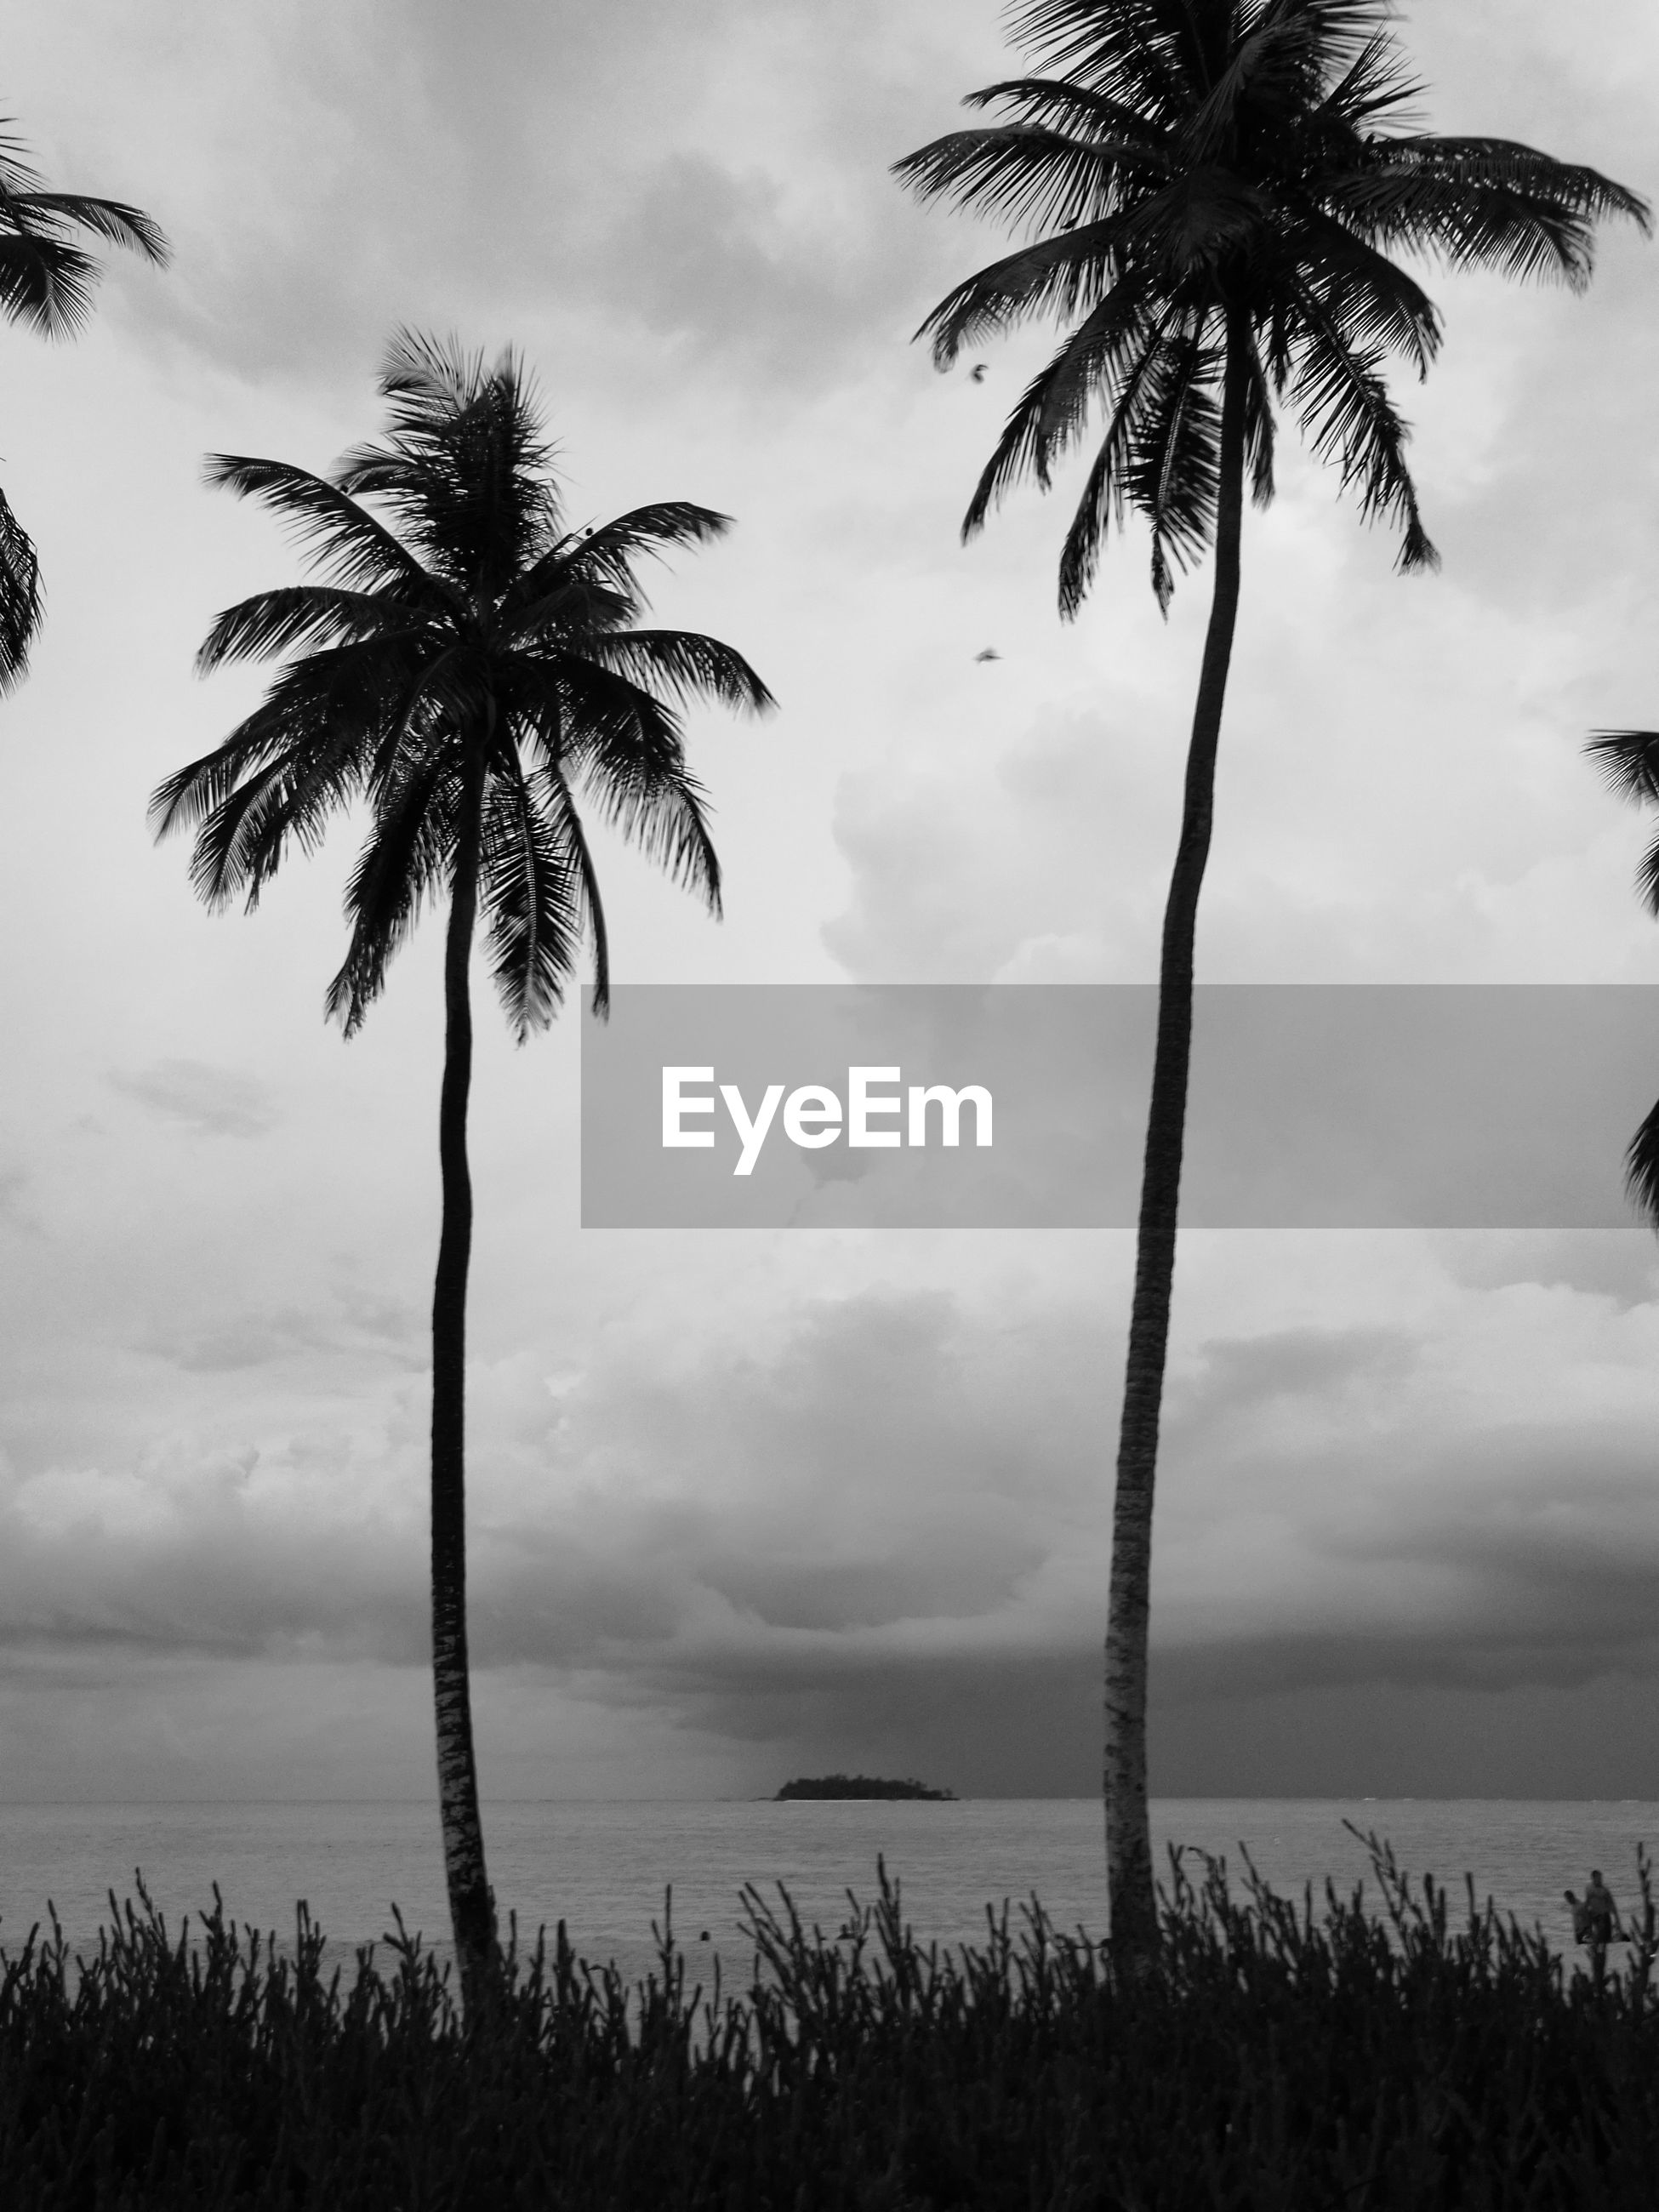 PALM TREES AGAINST CLOUDY SKY